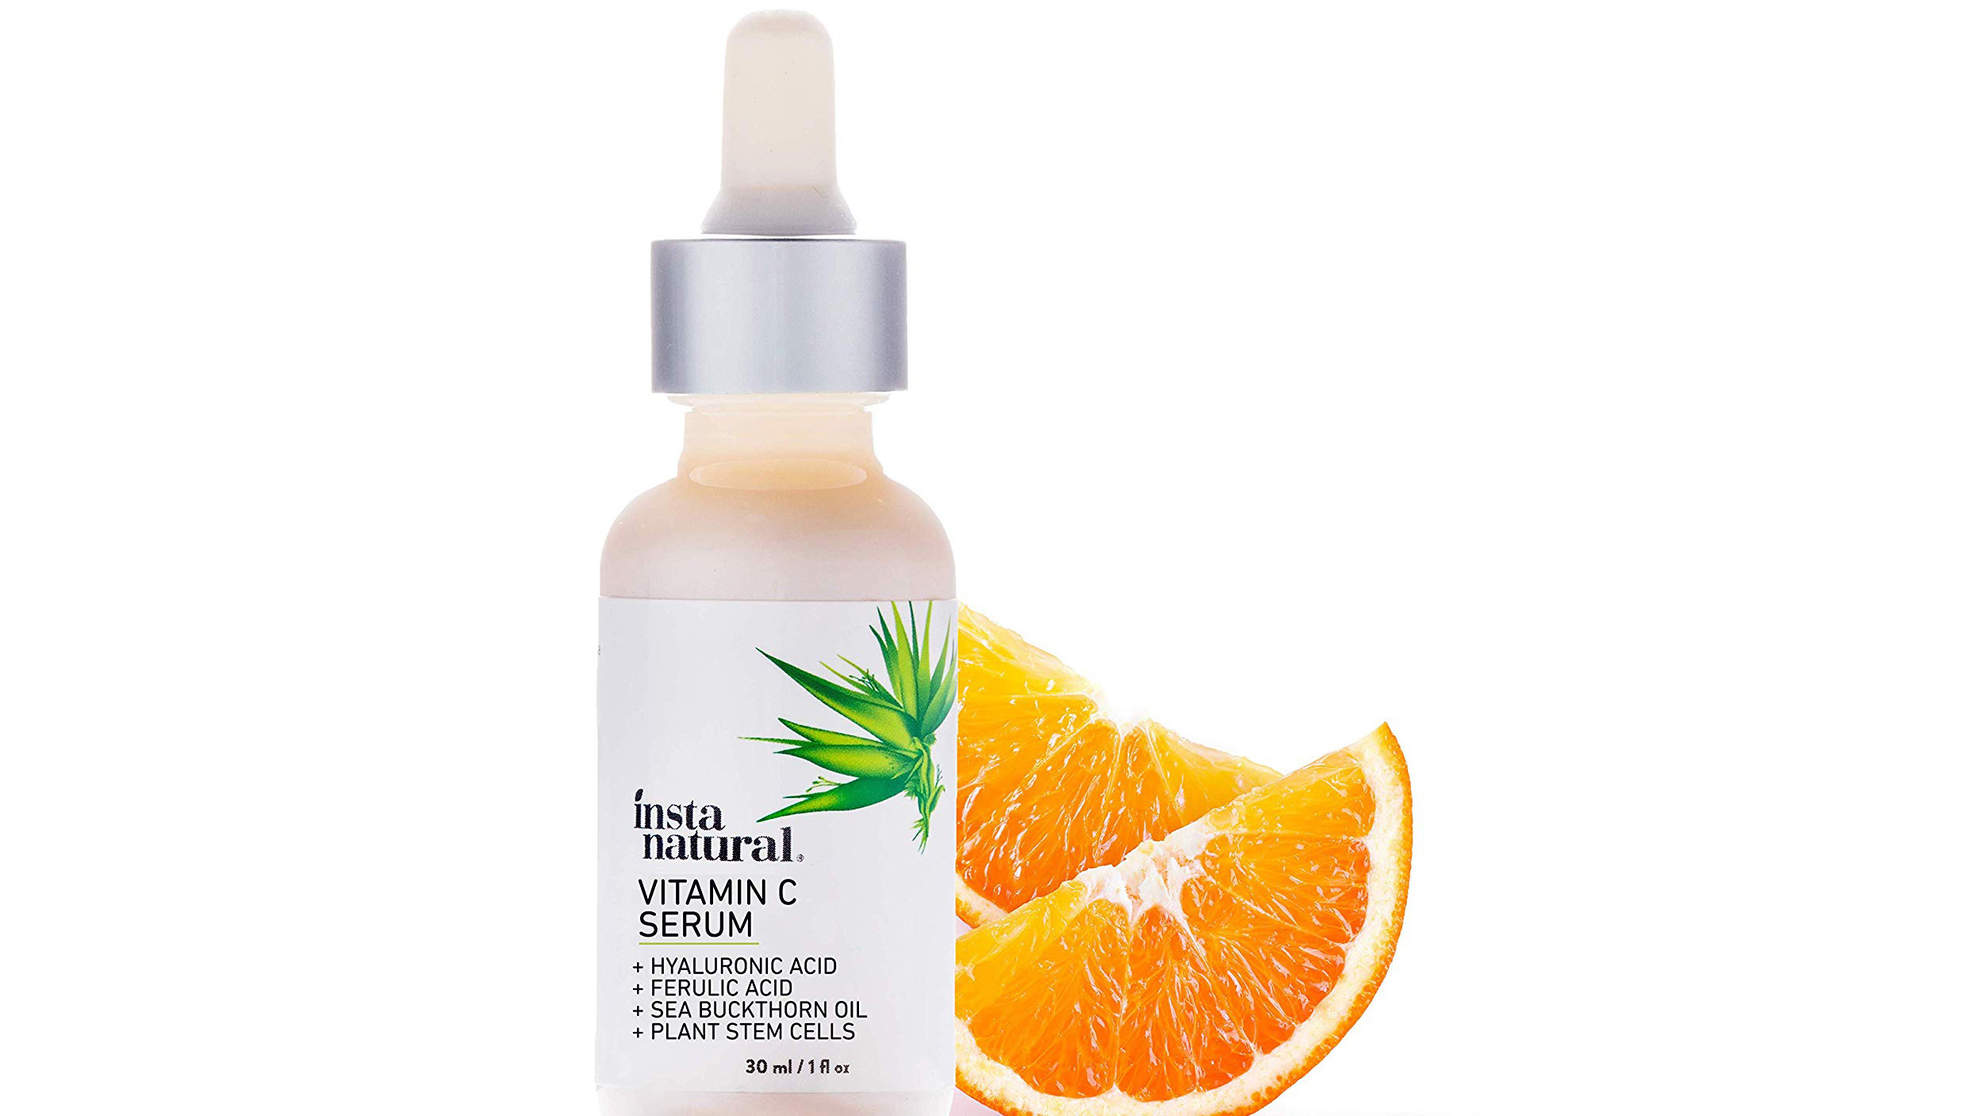 InstaNatural Vitamin C Serum with Hyaluronic Acid & Vit E